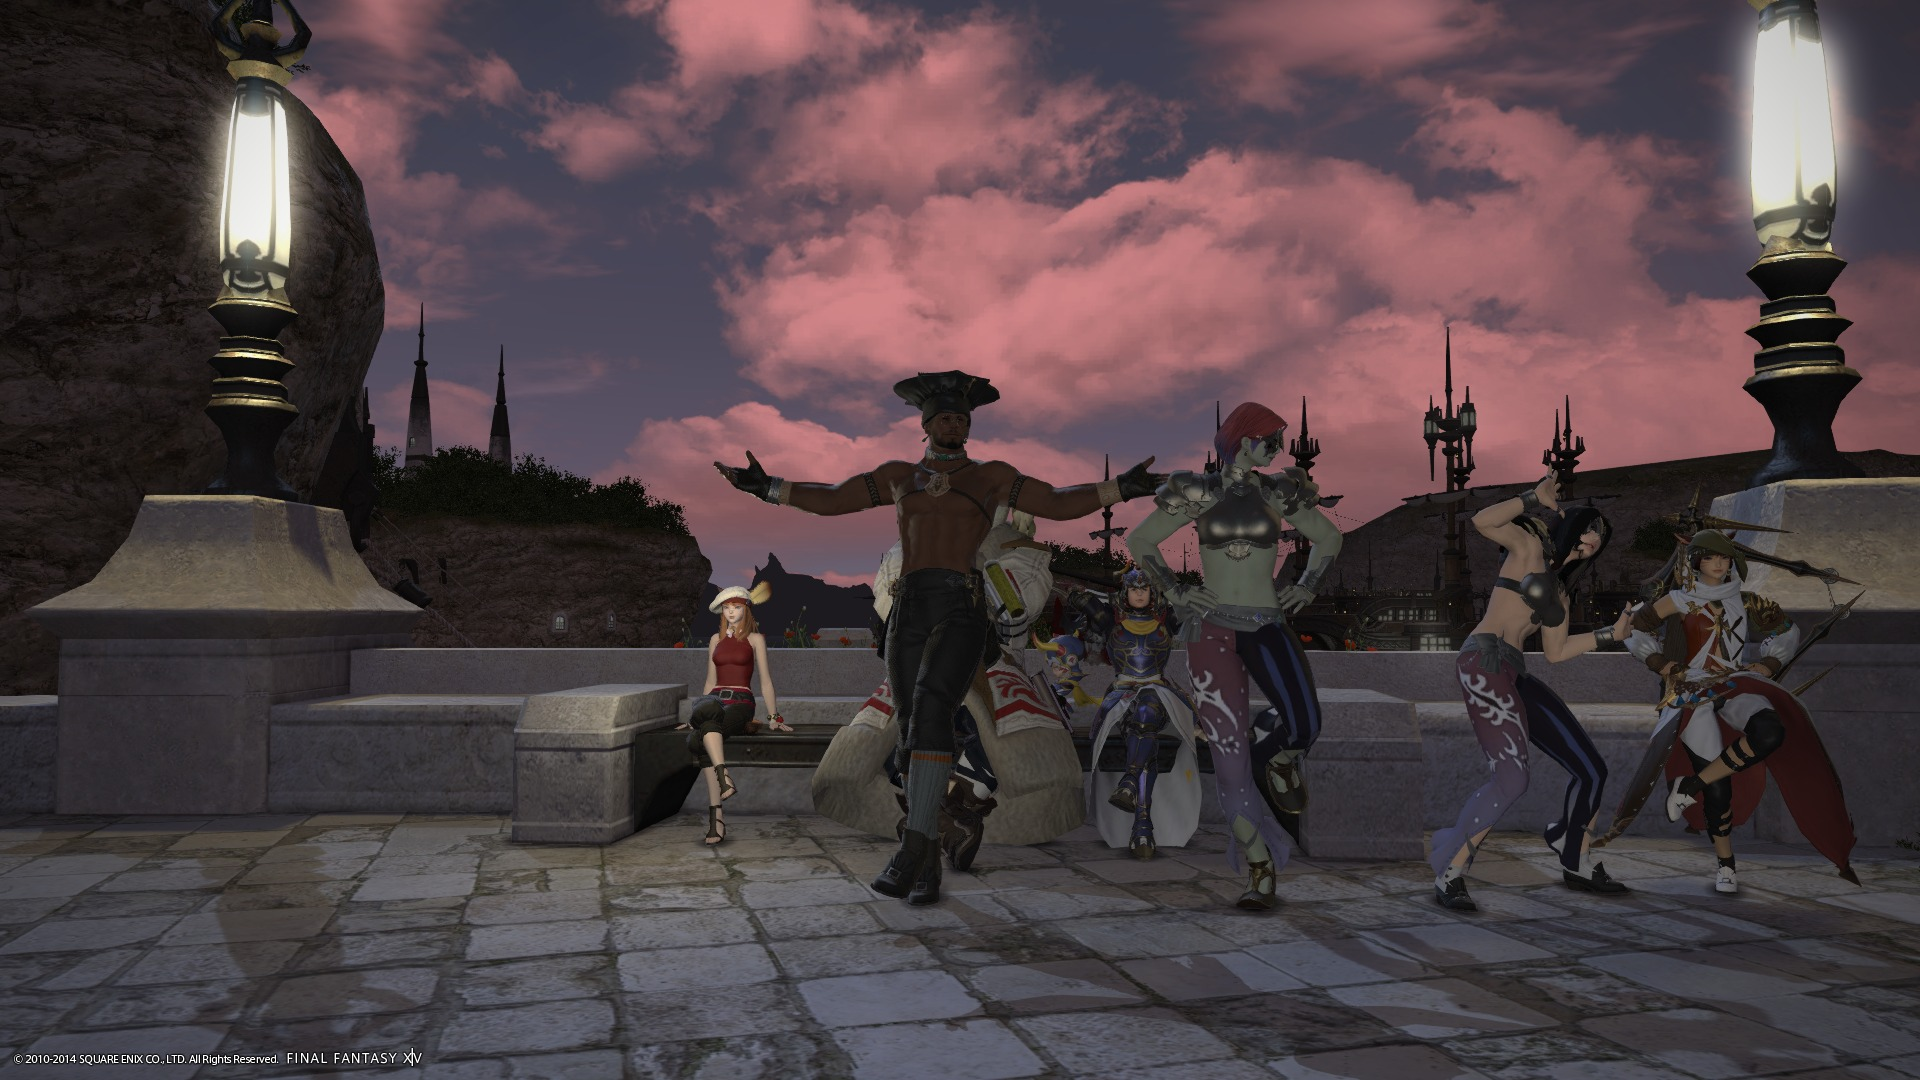 lonely ffxiv scaling them hurts down bucket size file need bigger 1920 stupid reborn screenshot thread realm fantasy 1017 somewhat less with release final